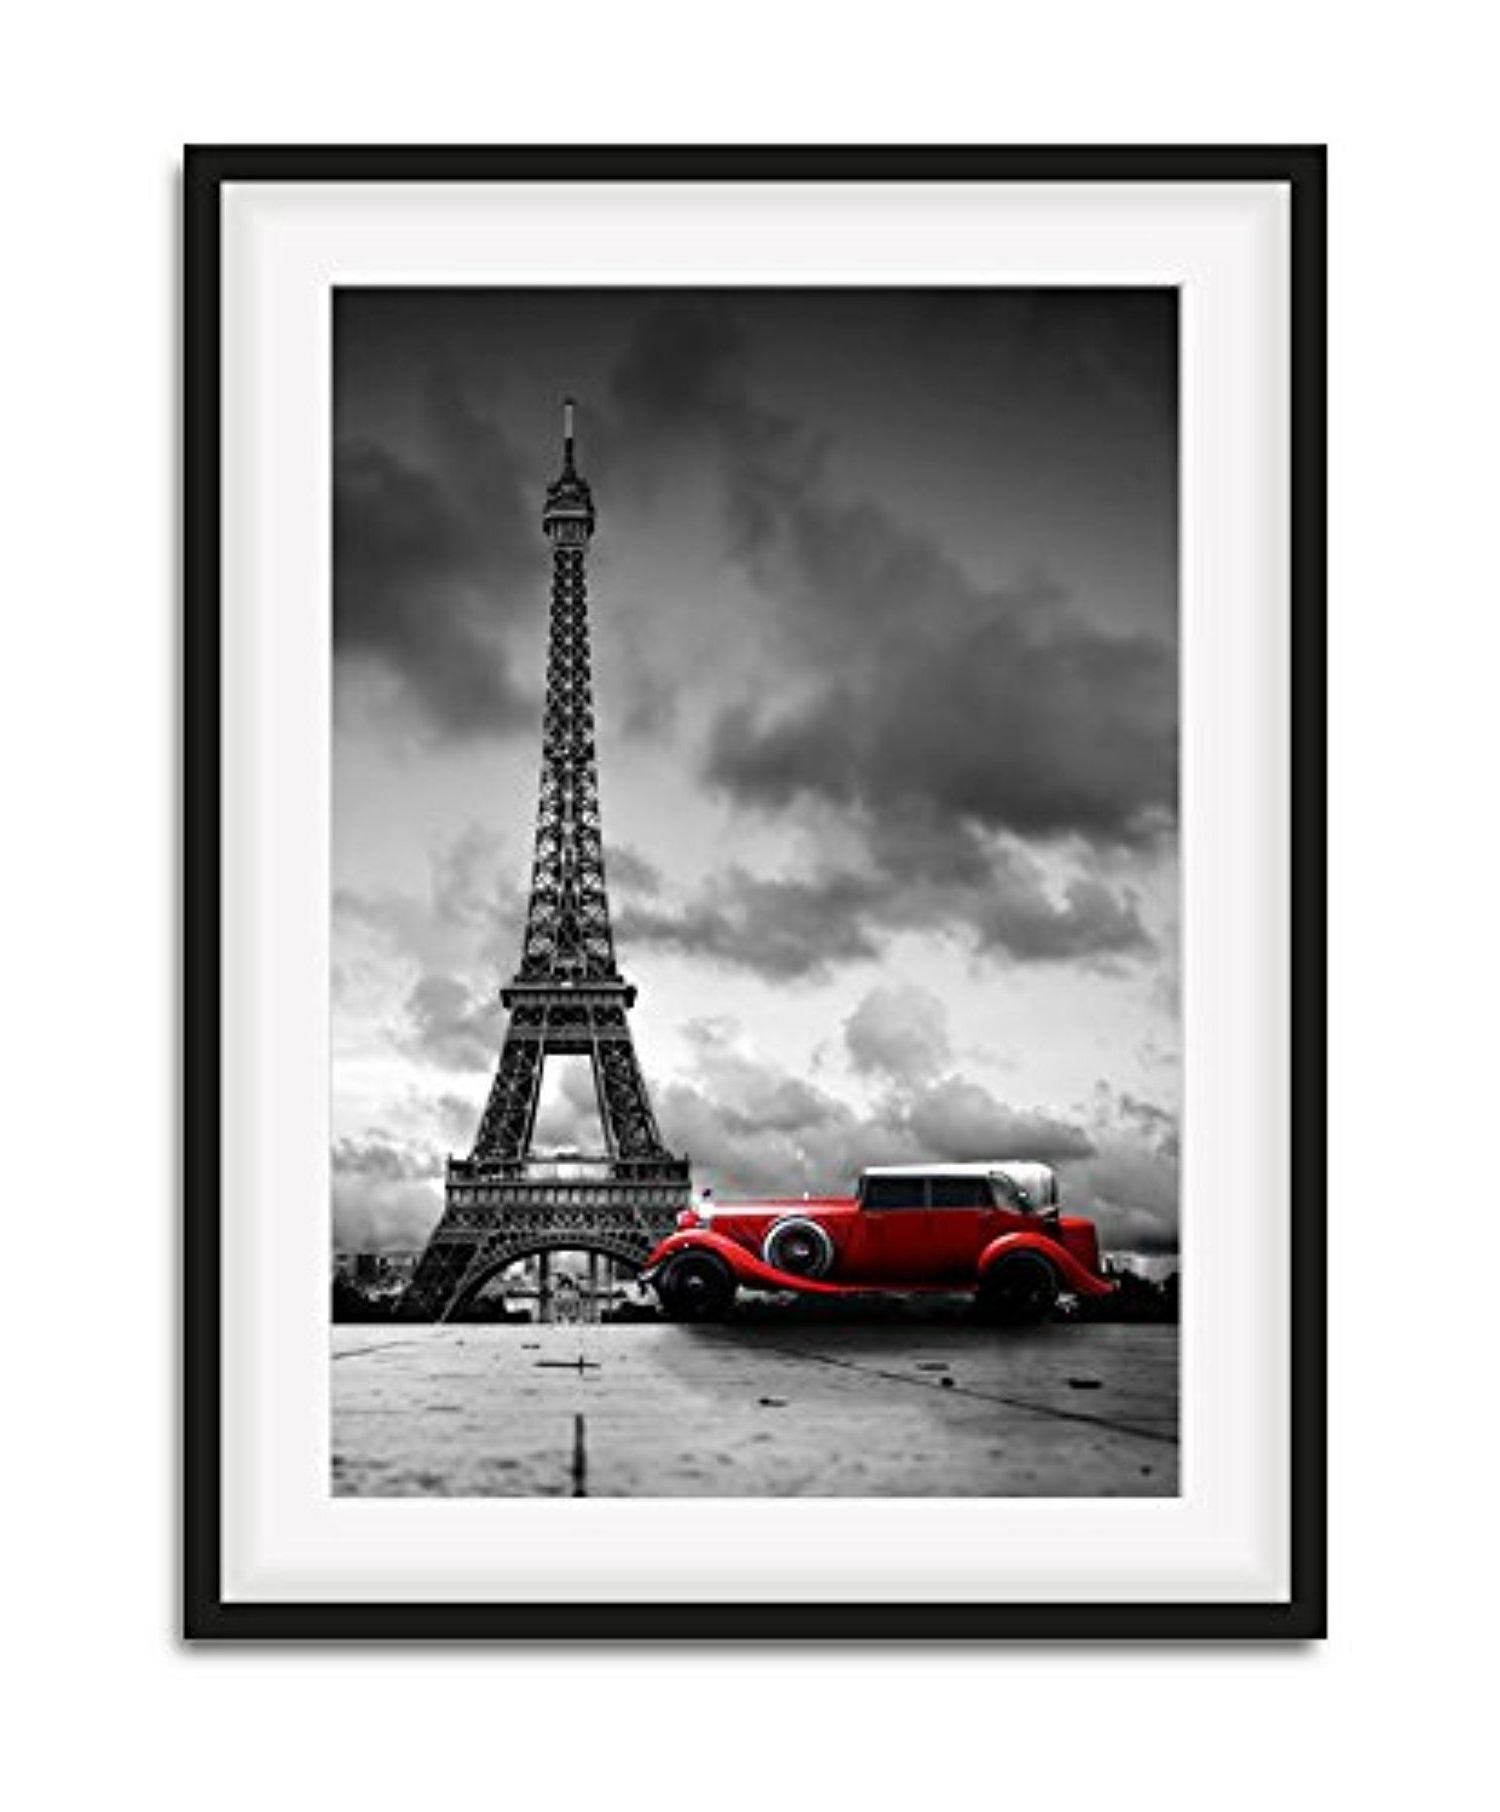 Newest Modern Framed Wall Art, Eiffel Tower And Red Car Picture Canvas Wall Regarding Modern Framed Wall Art Canvas (View 12 of 15)